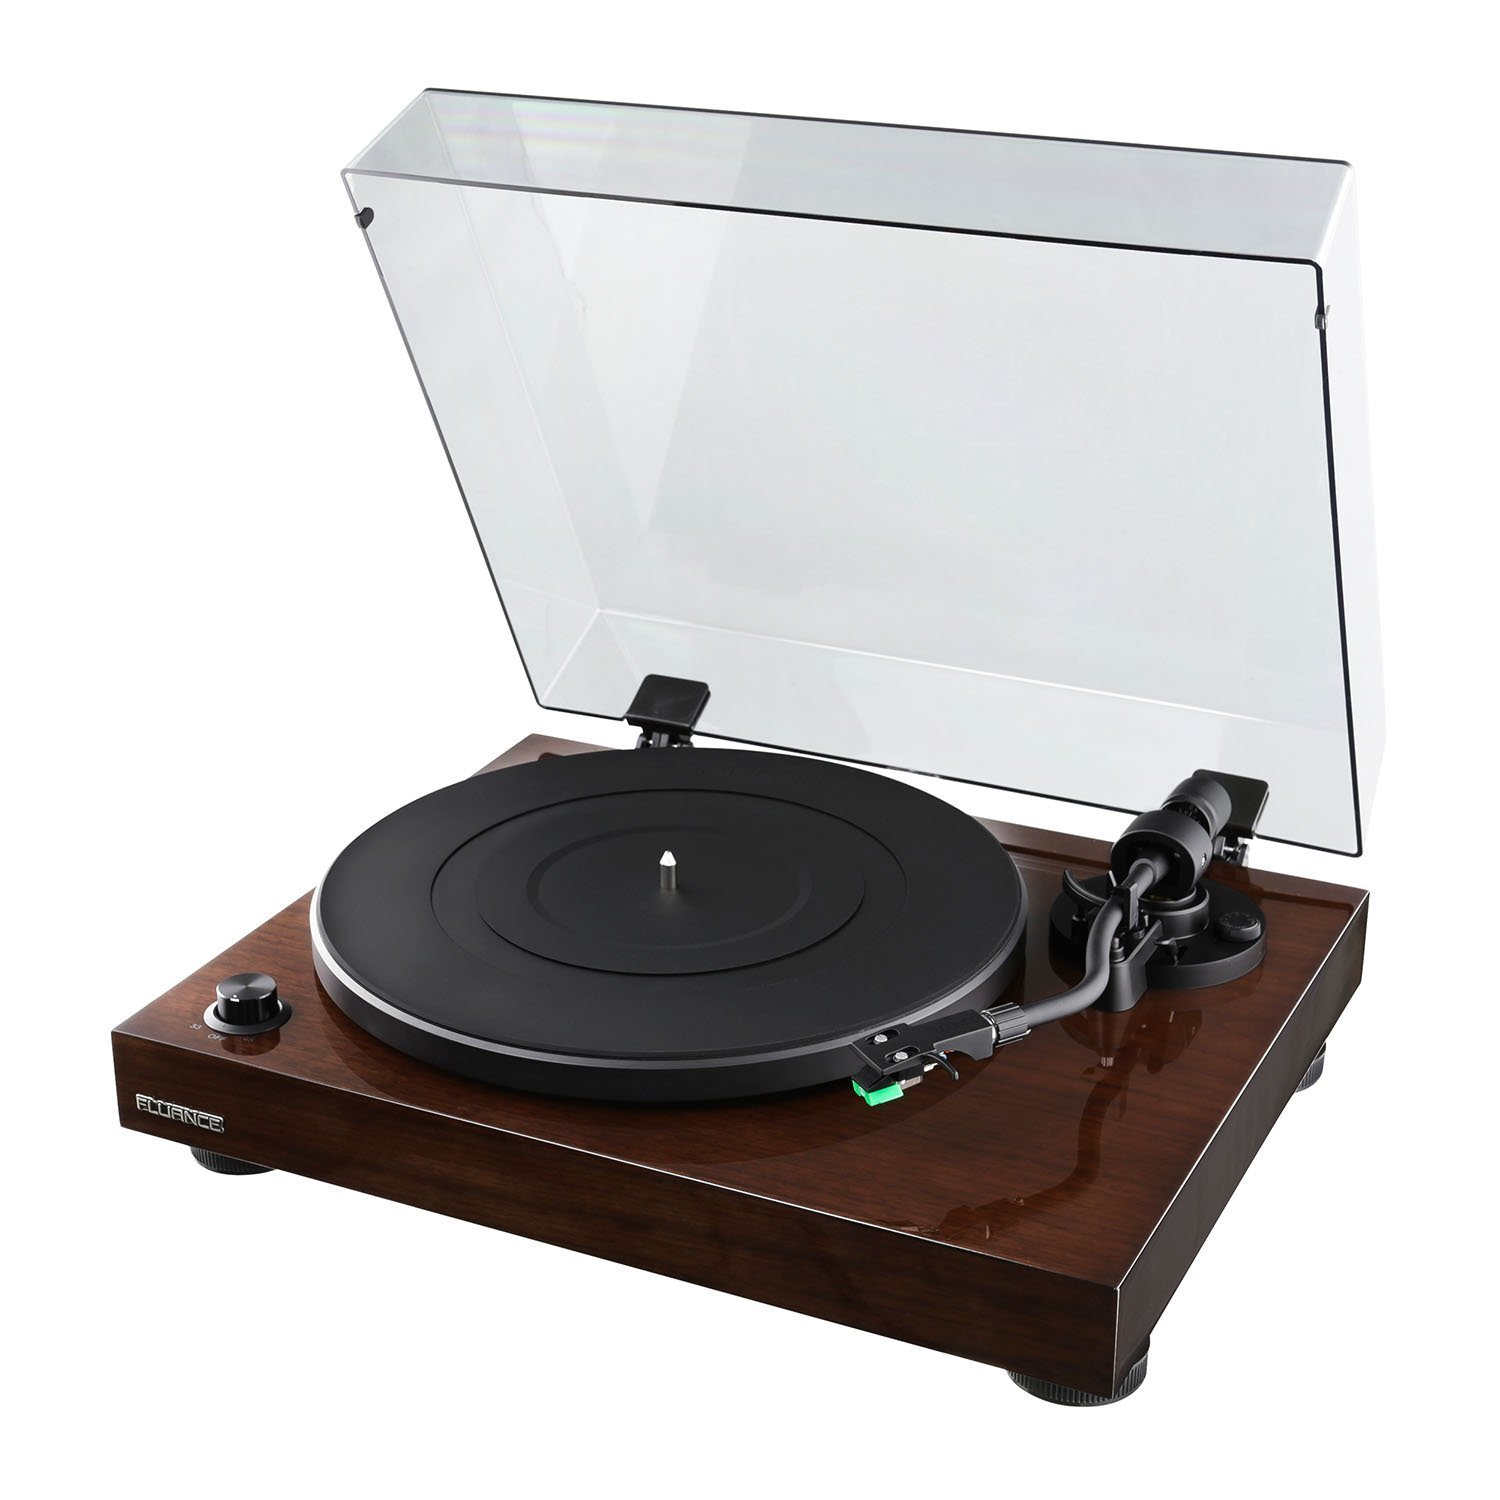 Record Player clipart old school #13